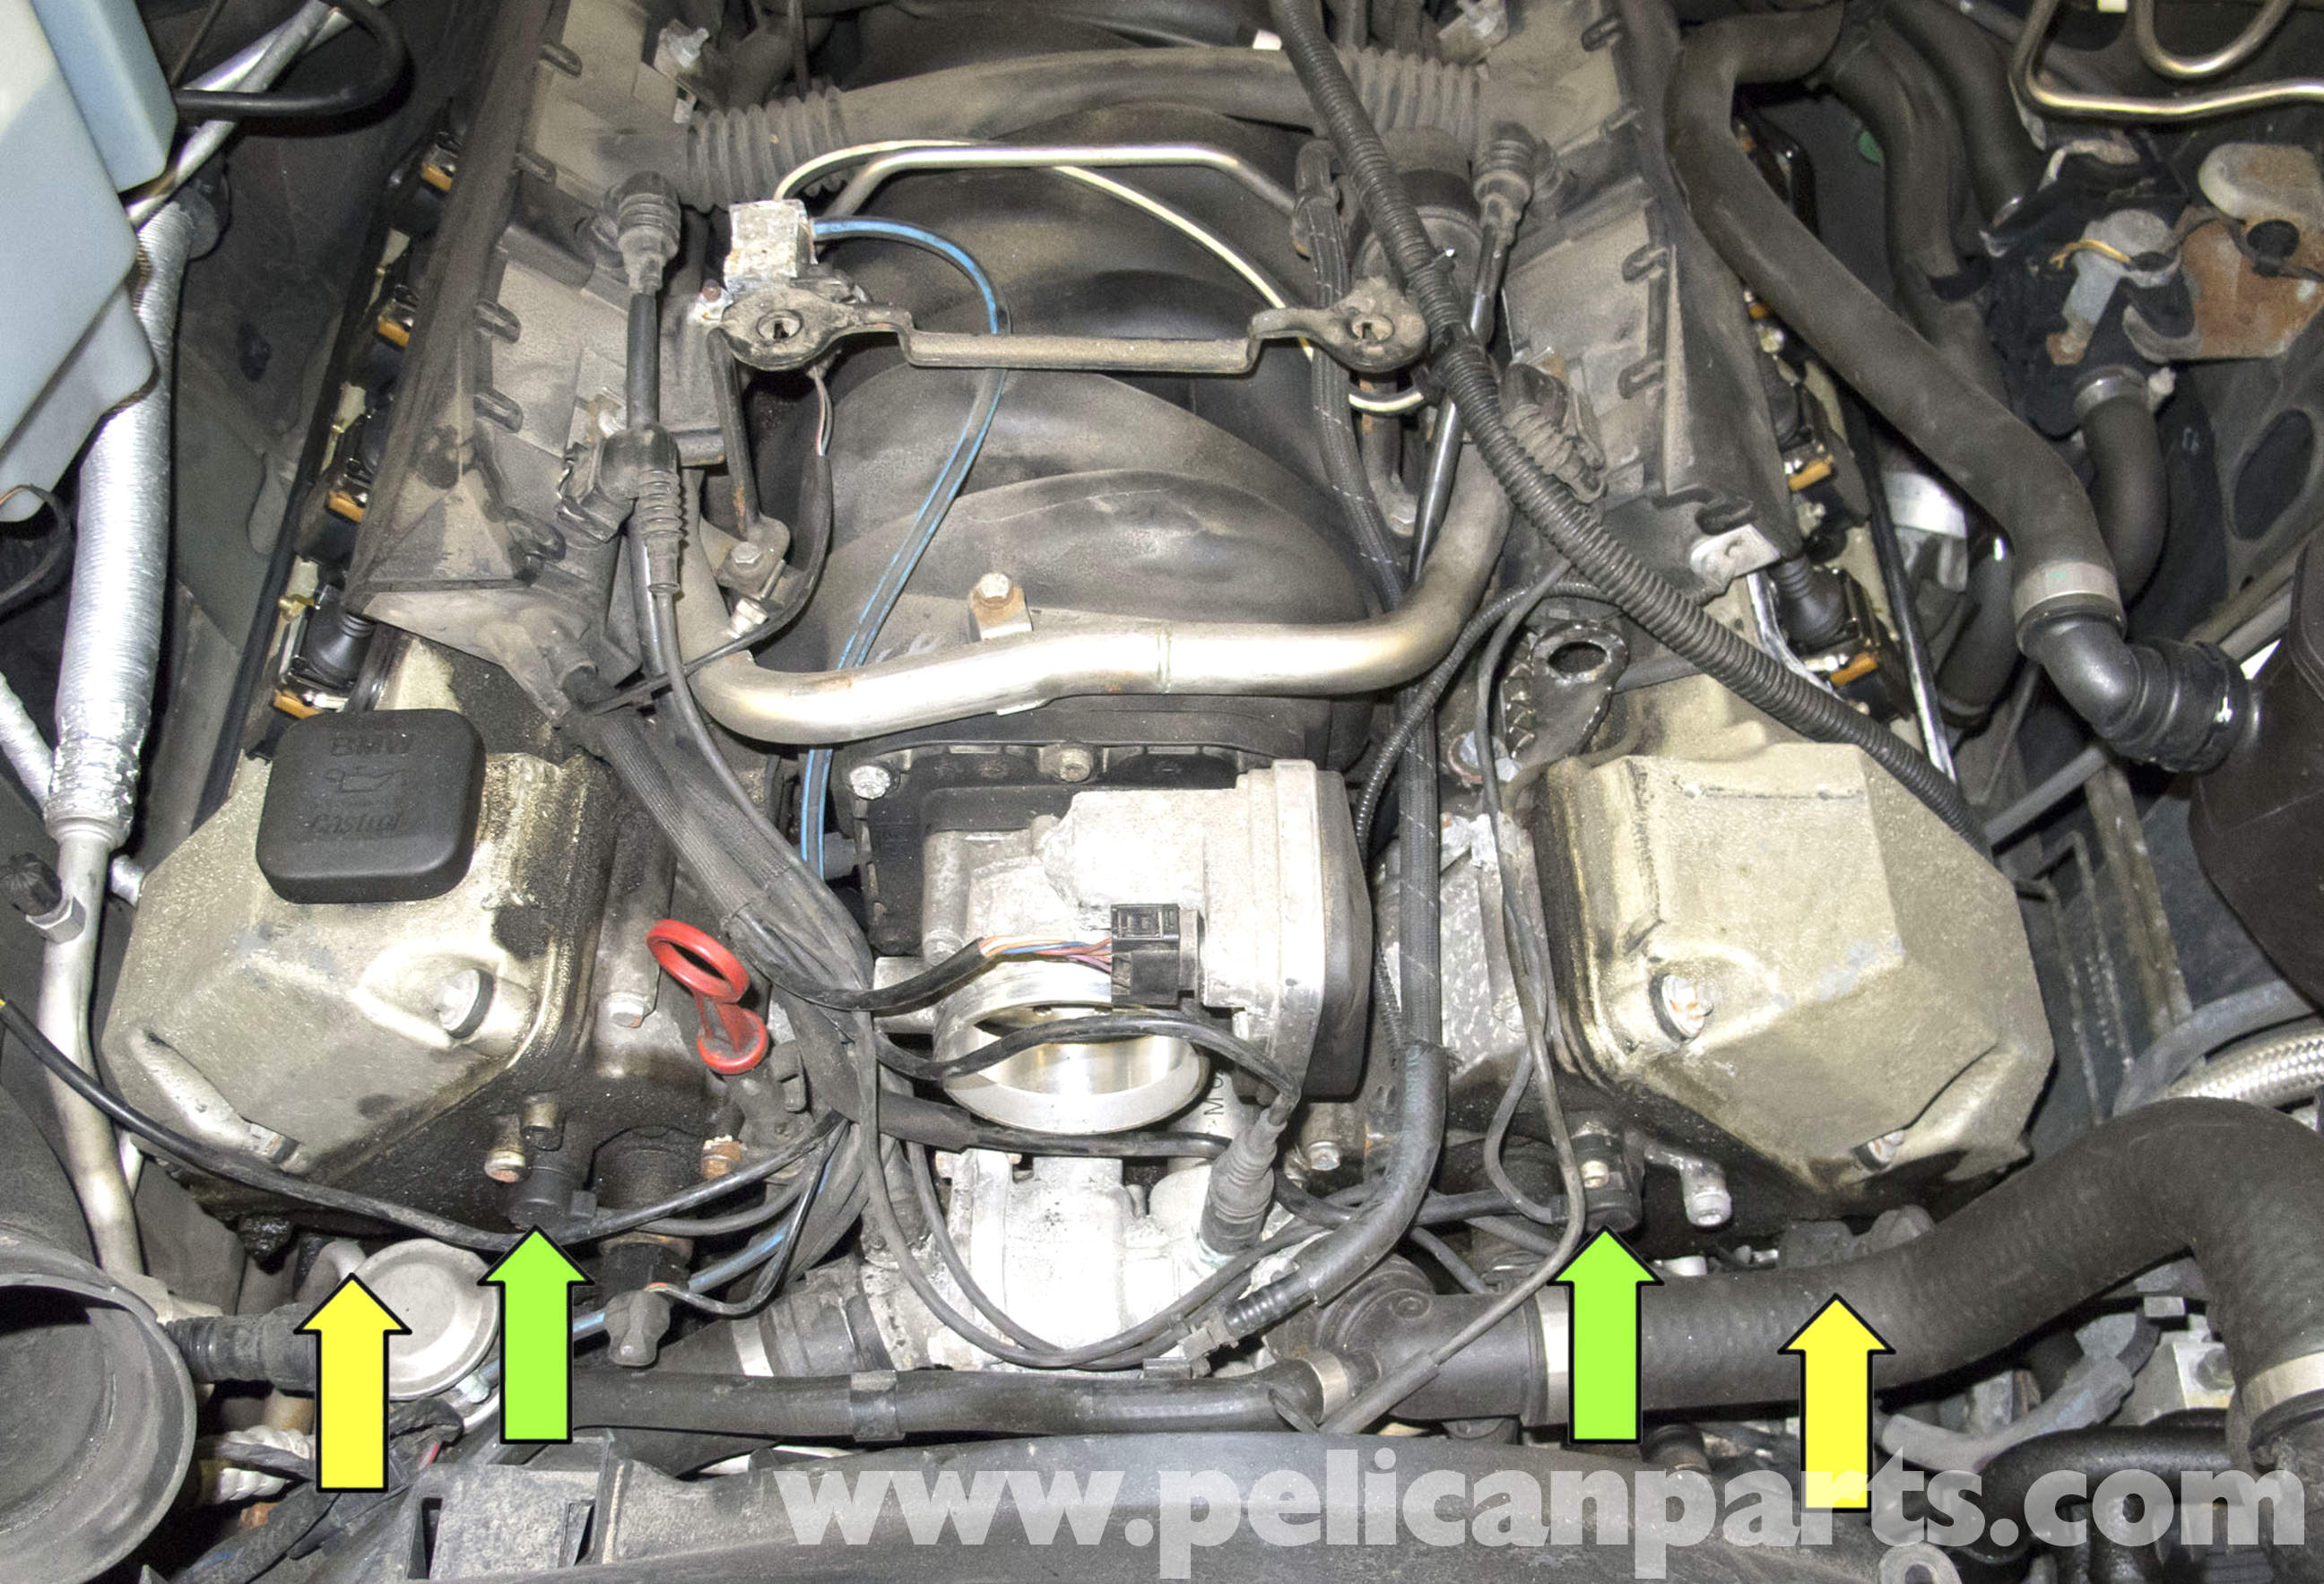 BMW X5 Camshaft Position Sensor Location on bmw e46 wiring diagram